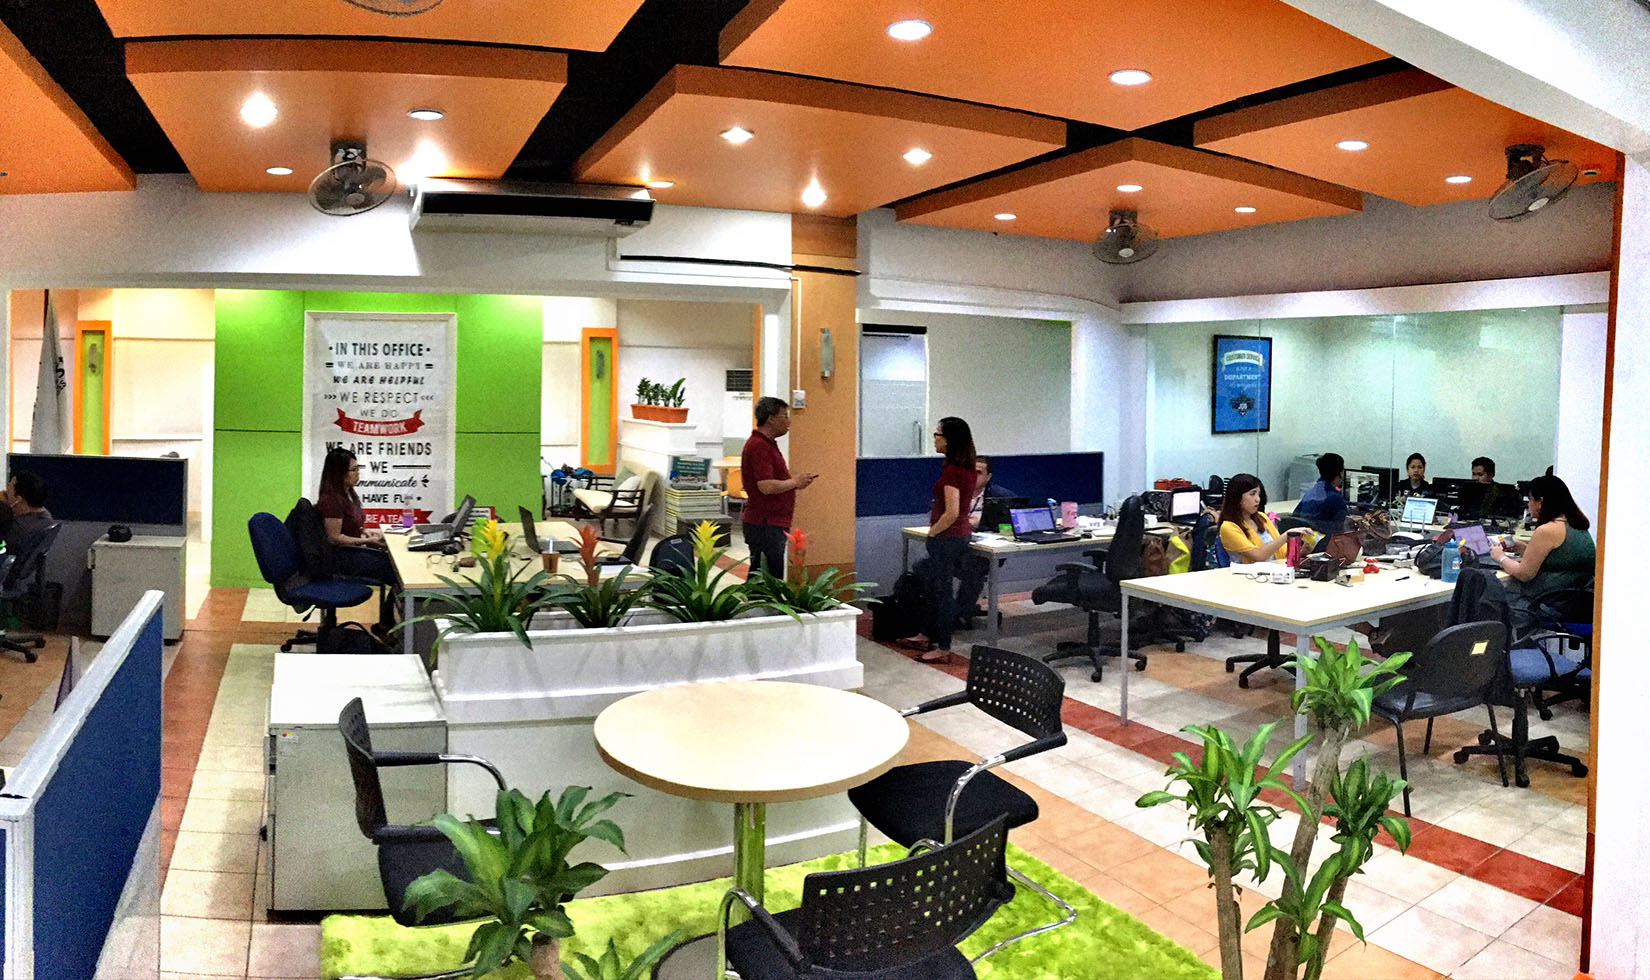 WTI Office Main Hall